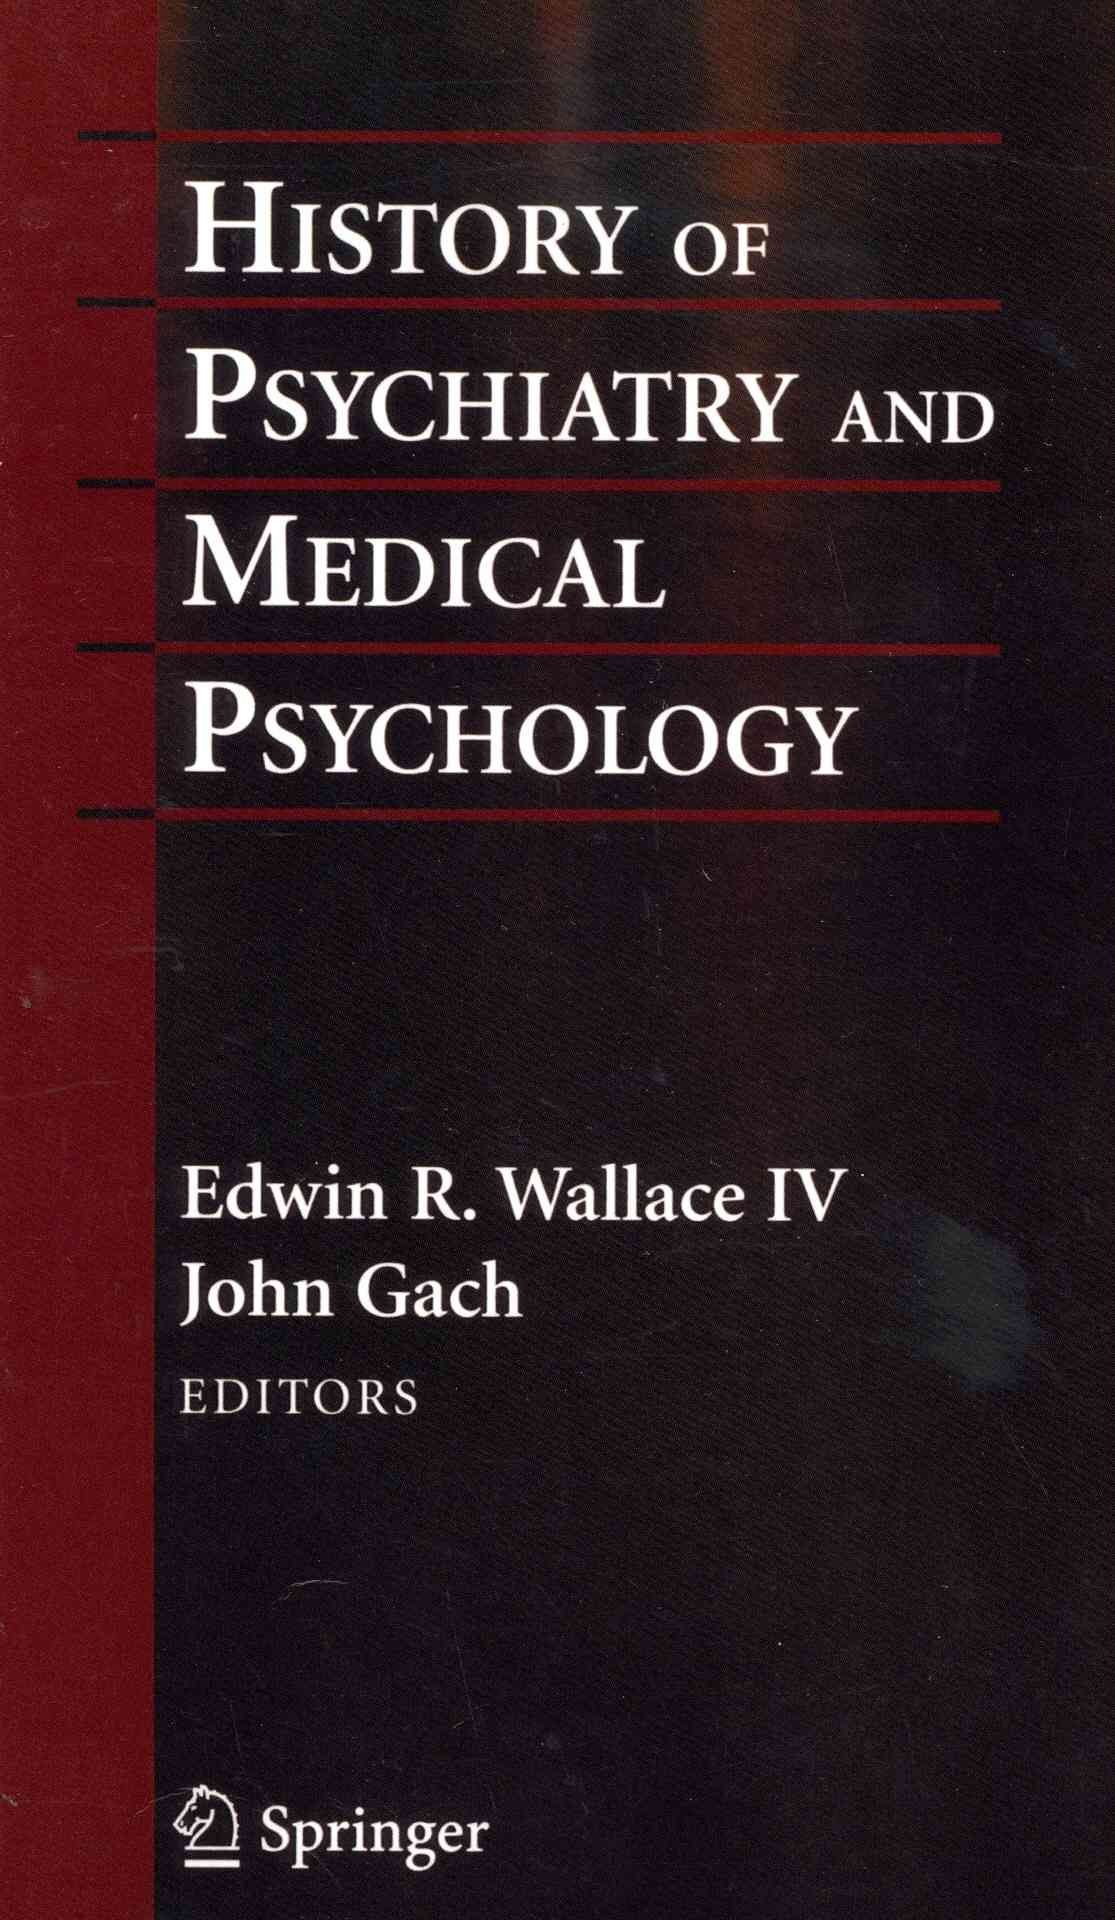 History of Psychiatry and Medical Psychology - Edwin Wallace